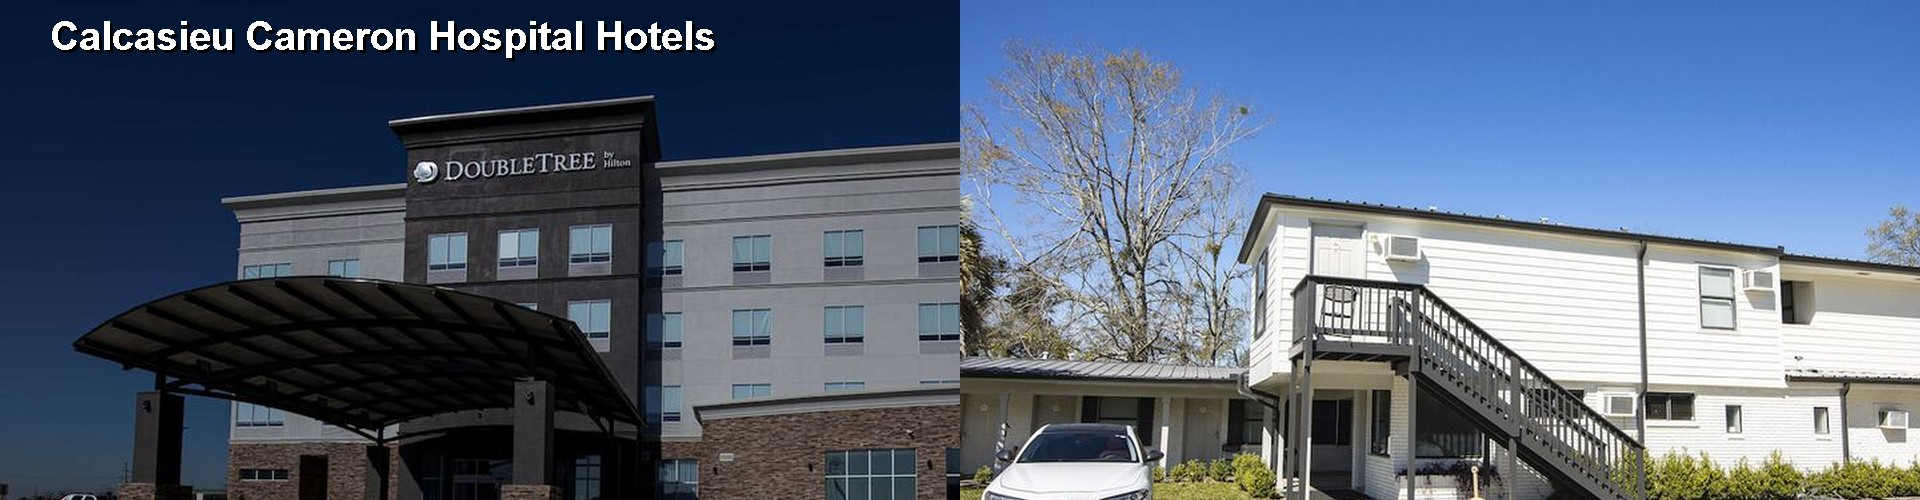 5 Best Hotels near Calcasieu Cameron Hospital